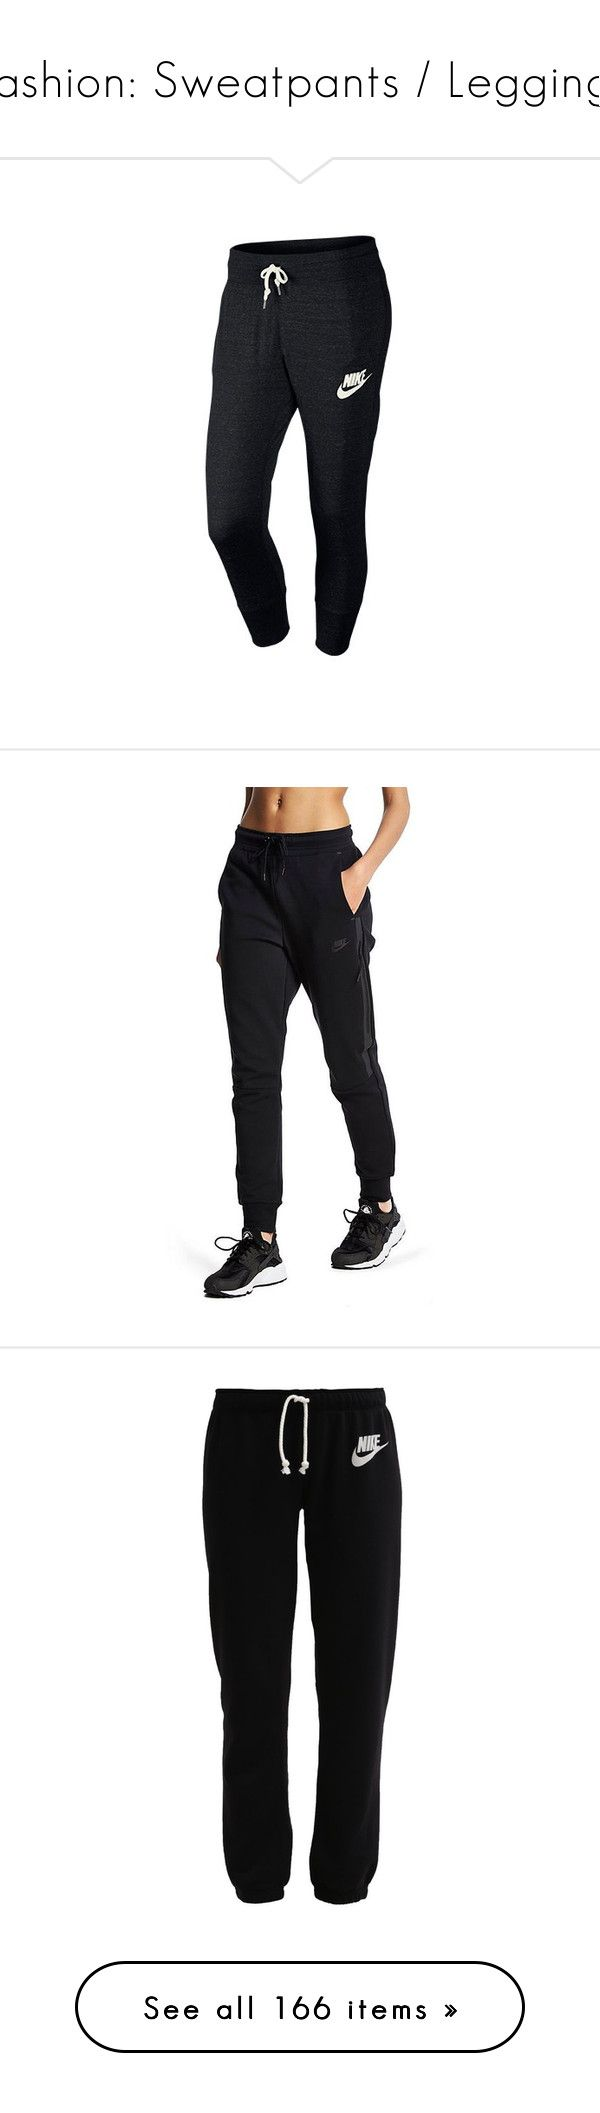 """""""Fashion: Sweatpants / Leggings"""" by katiasitems on Polyvore featuring activewear, activewear pants, pants, black, nike, nike sportswear, nike activewear pants, nike activewear, bottoms and sweatpants"""